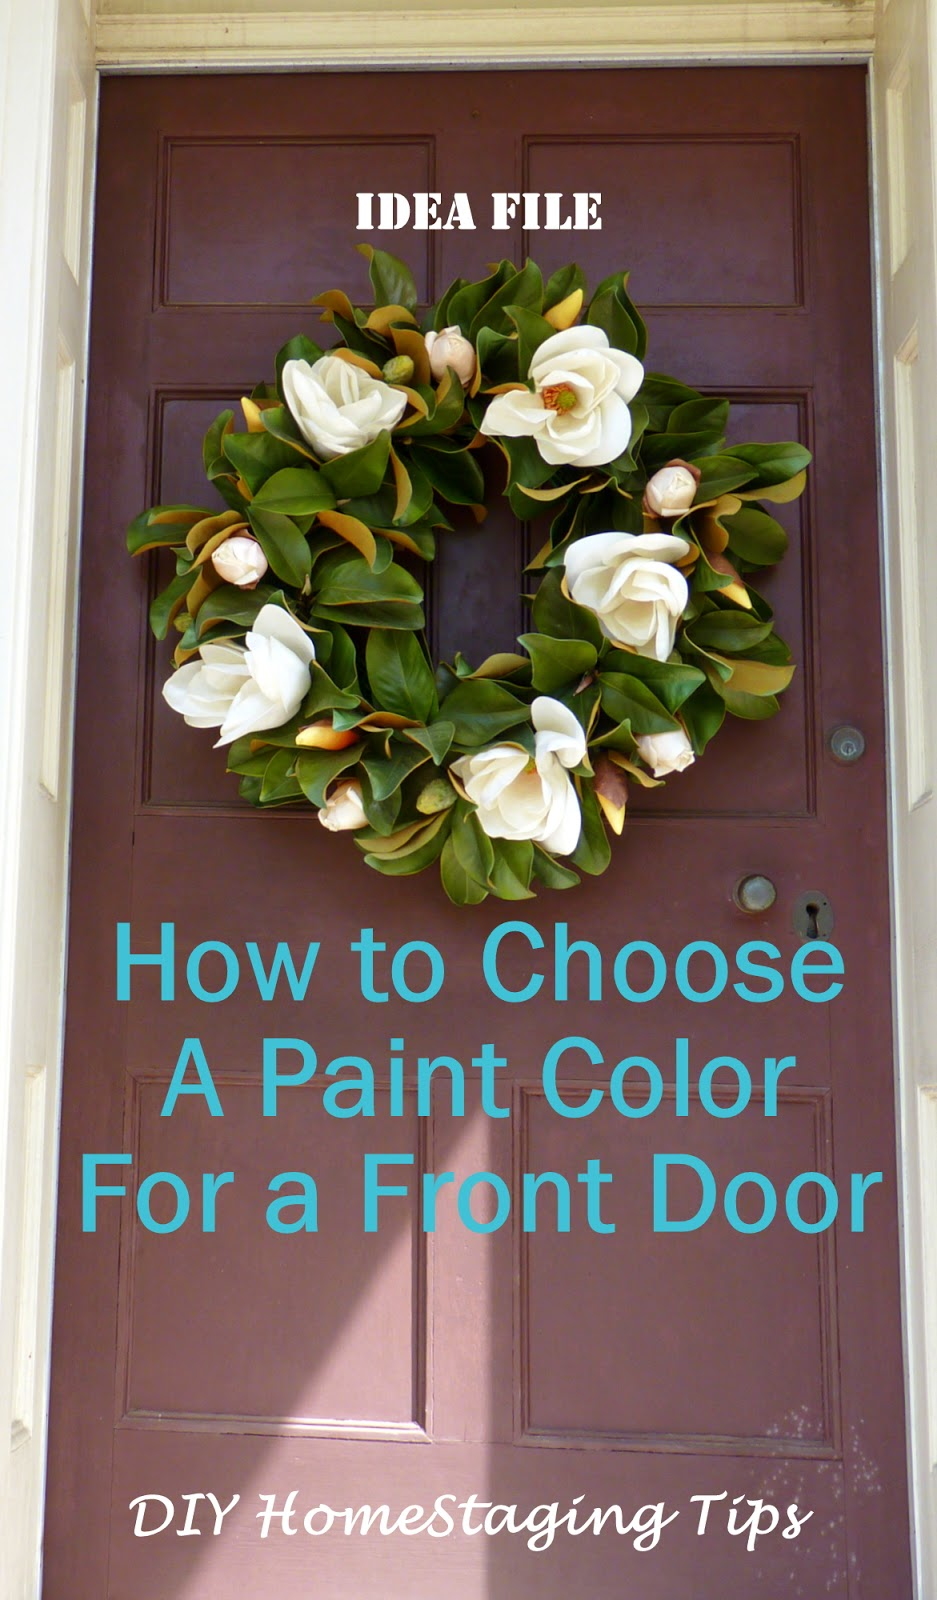 Painting It Yourself Is An Economical And Simple Improvement. These  Guidelines Should Help You Decide On The Perfect Color. For More Tips On  Boosting Your ...